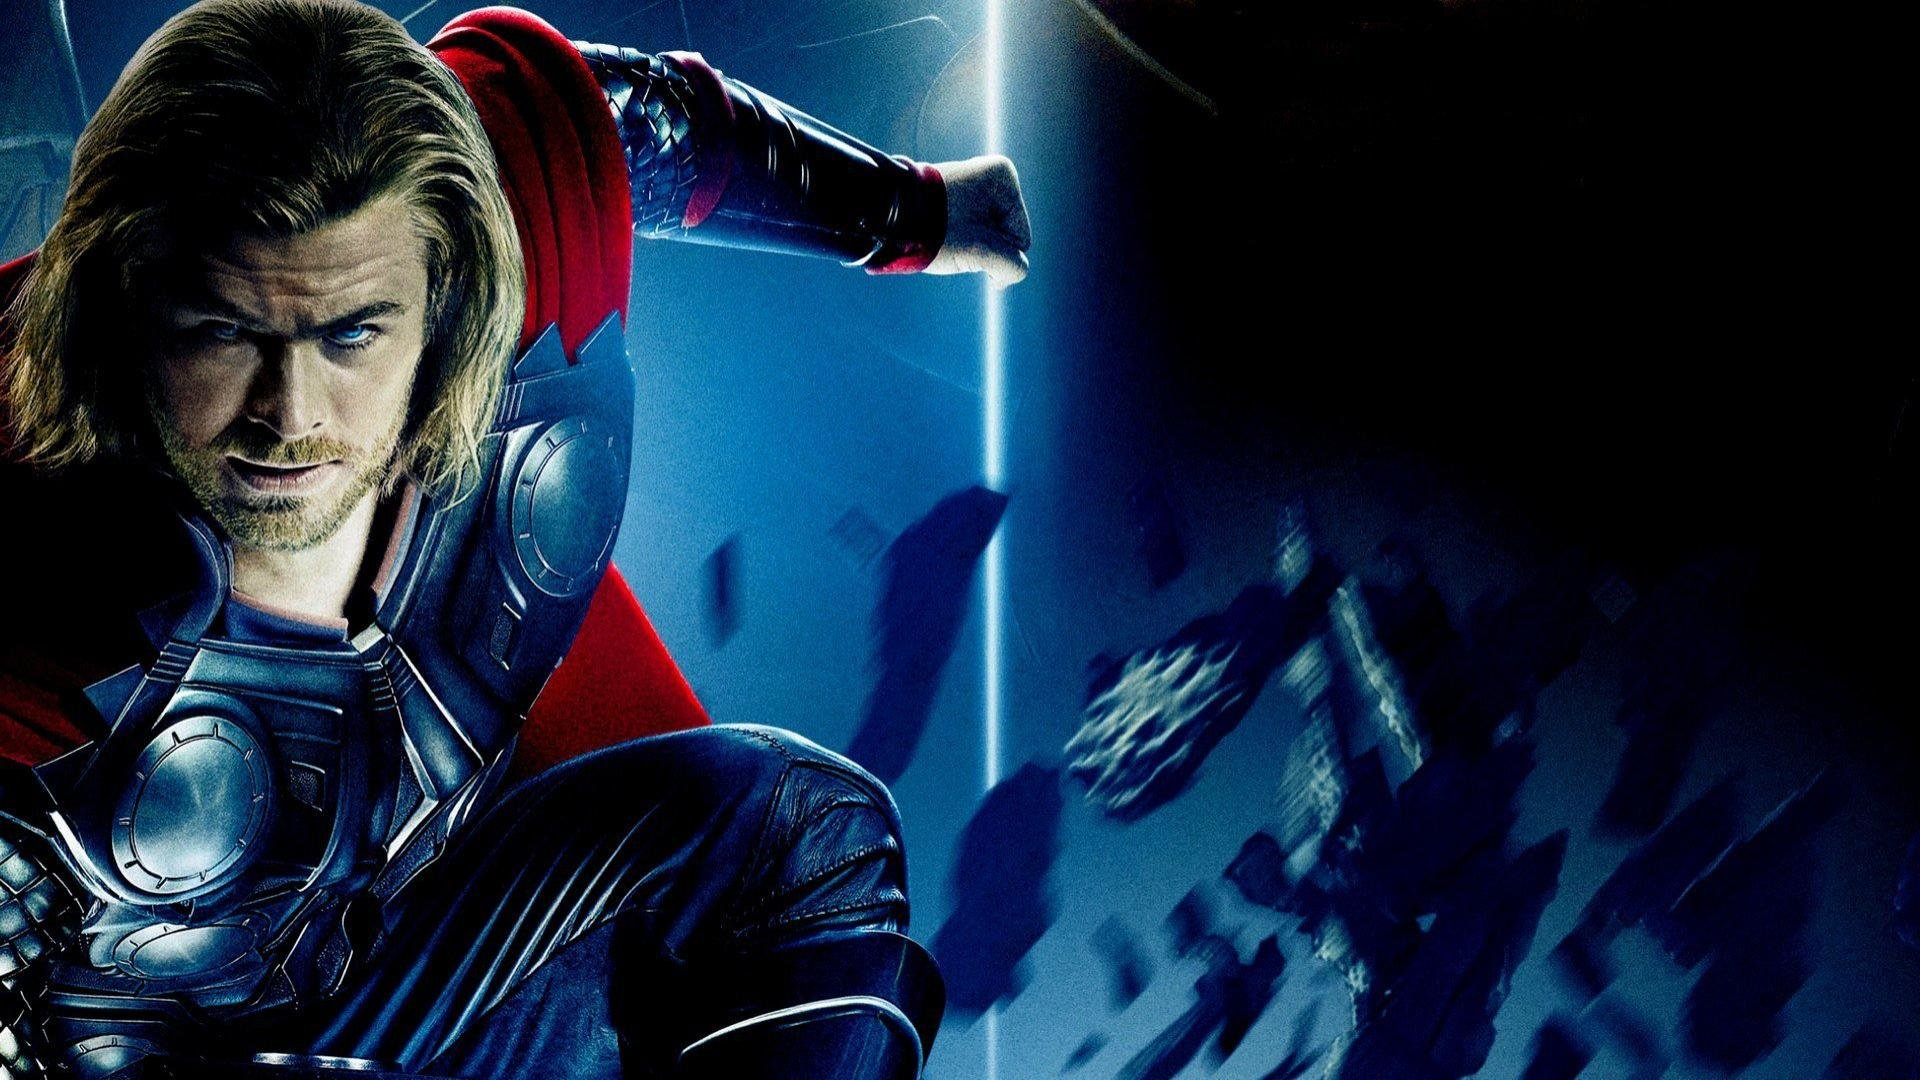 High Resolution Thor Hd 1920x1080 Wallpaper Id 245954 For Computer